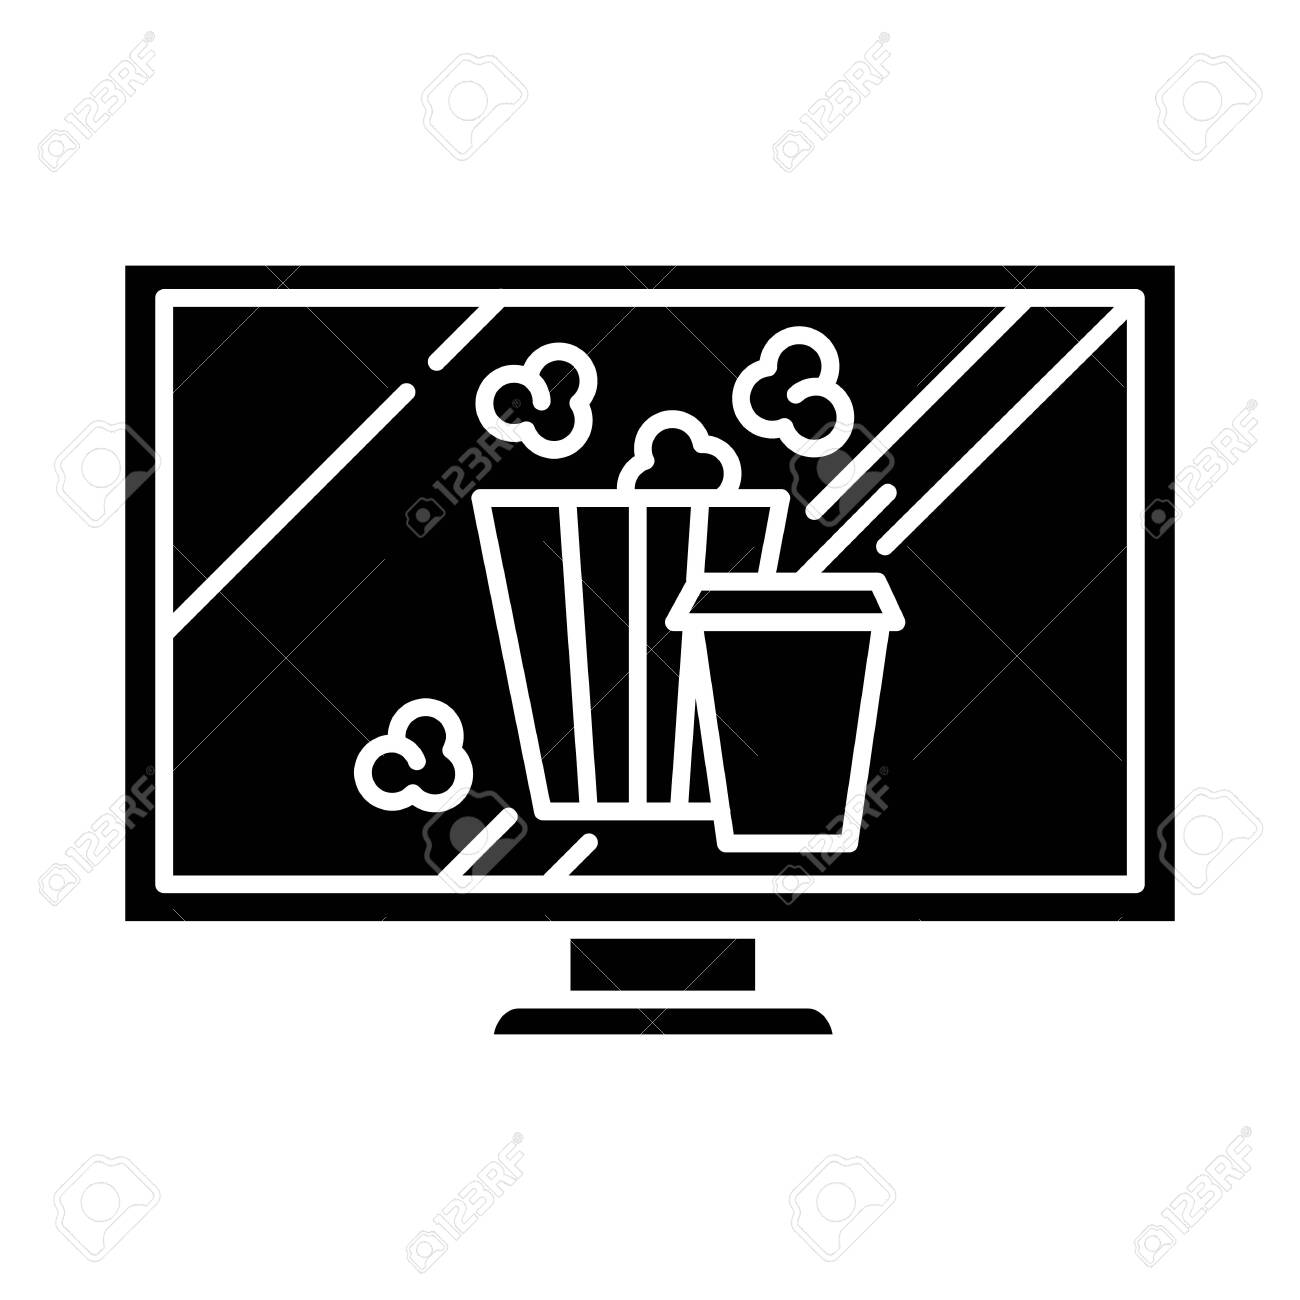 Movies and television glyph icon. Watching films, tv shows online. Popcorn and drinks. E commerce department, shopping categories. Silhouette symbol. Negative space. Vector isolated illustration - 132909817